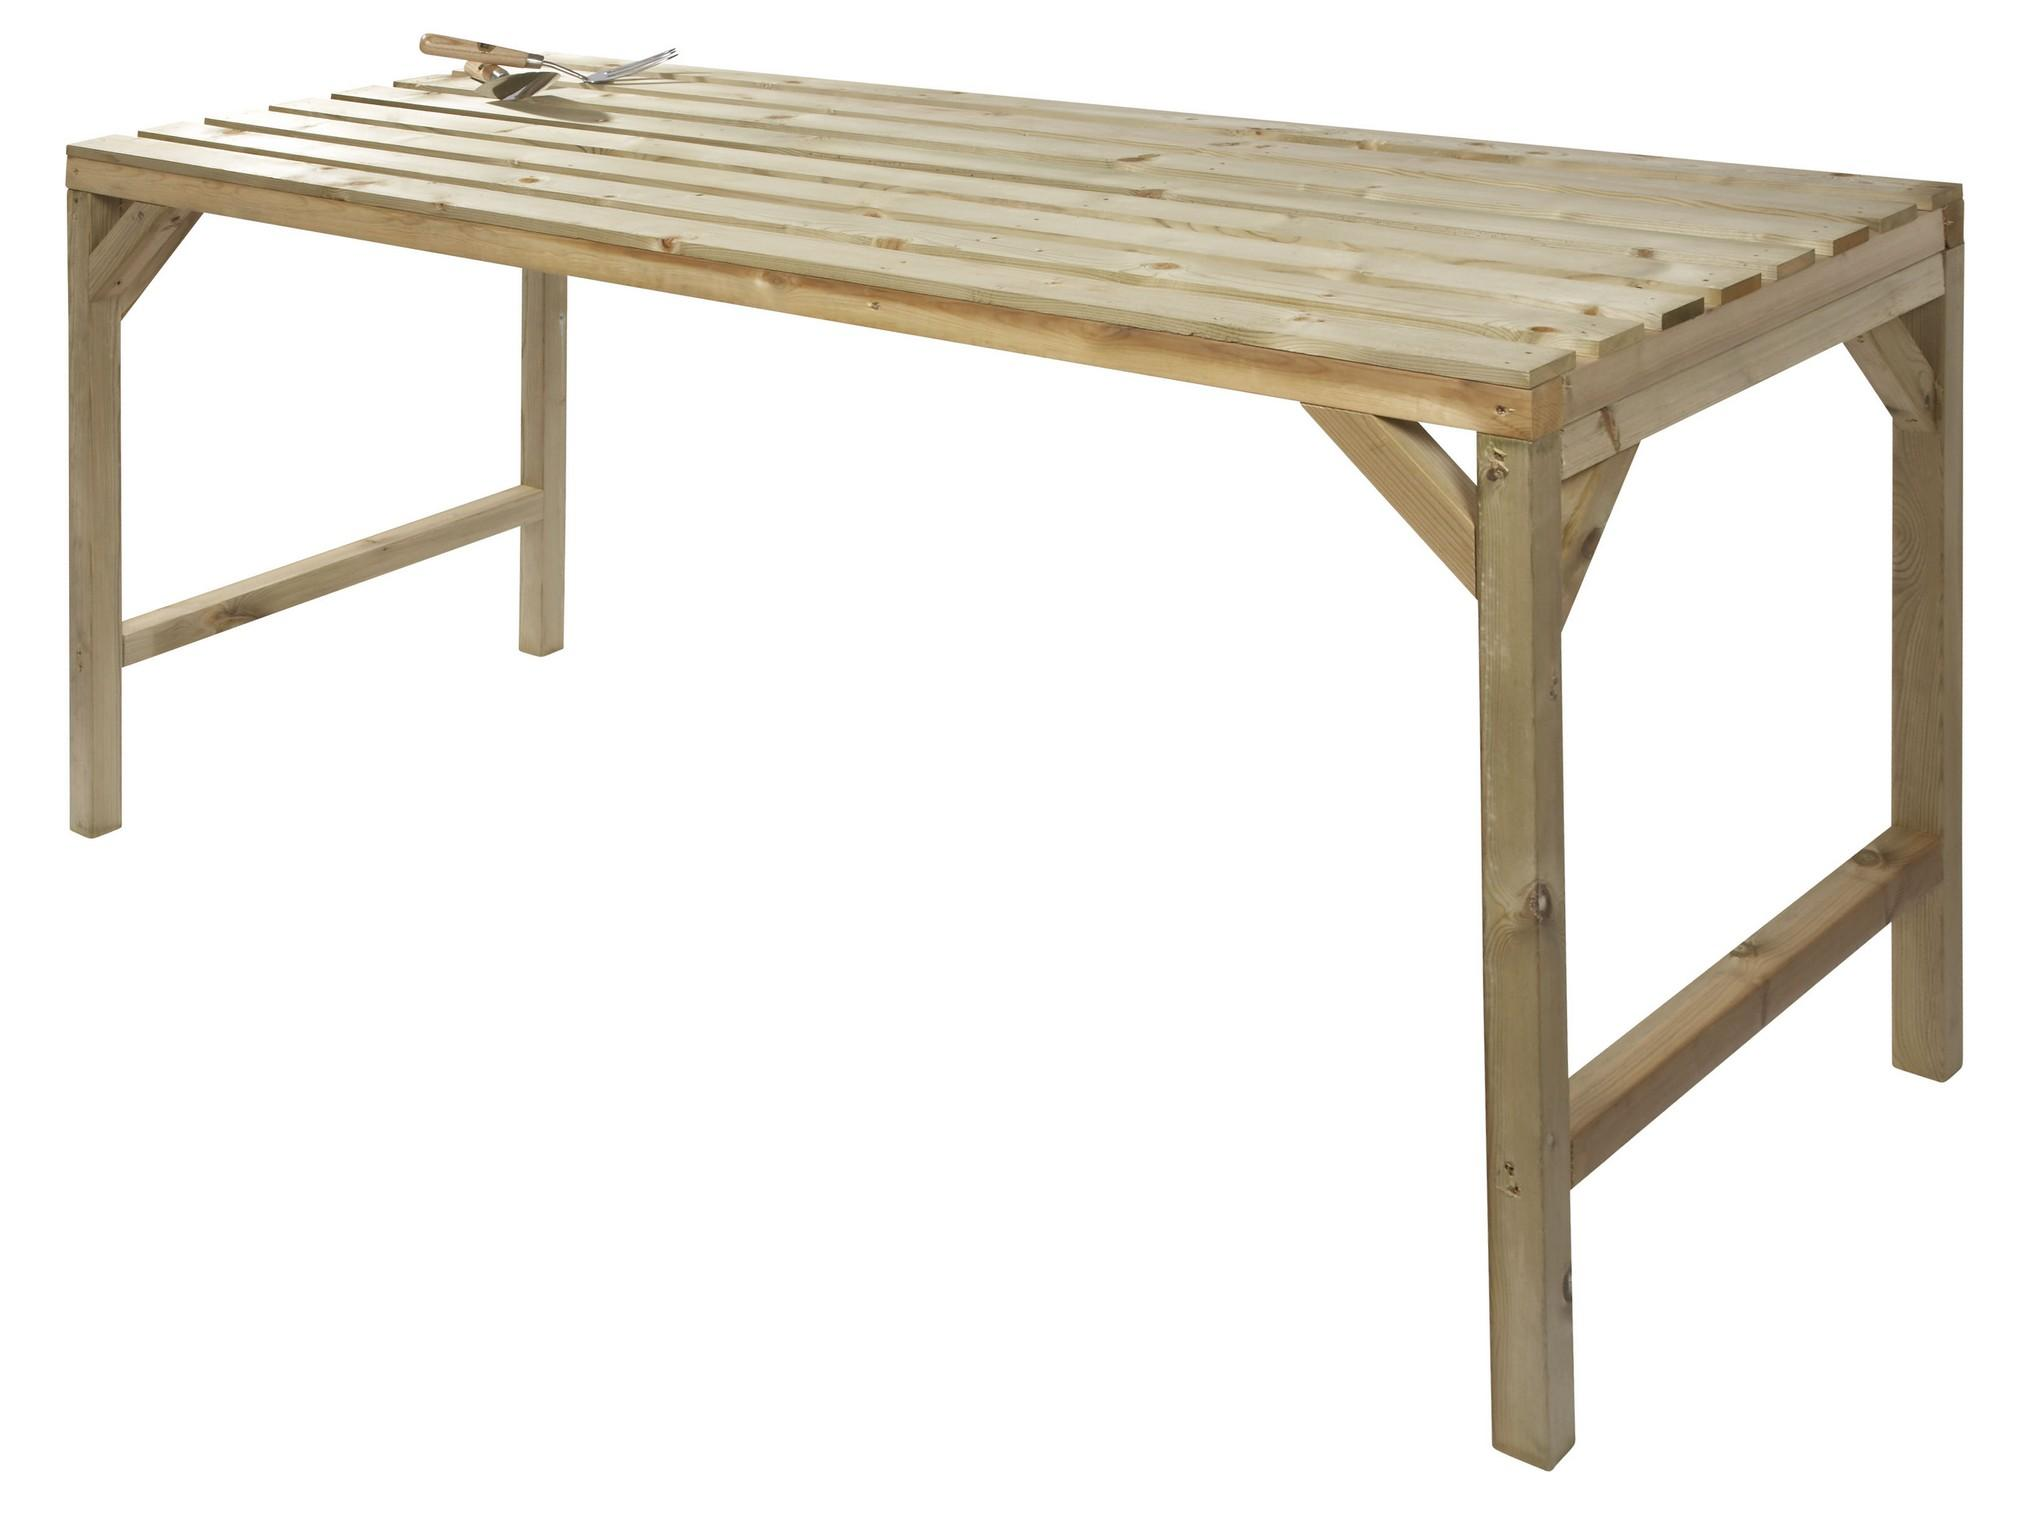 Hercules wooden greenhouse staging bench 6ft long x 30 wide 1785mm x 763mm ebay 30 bench